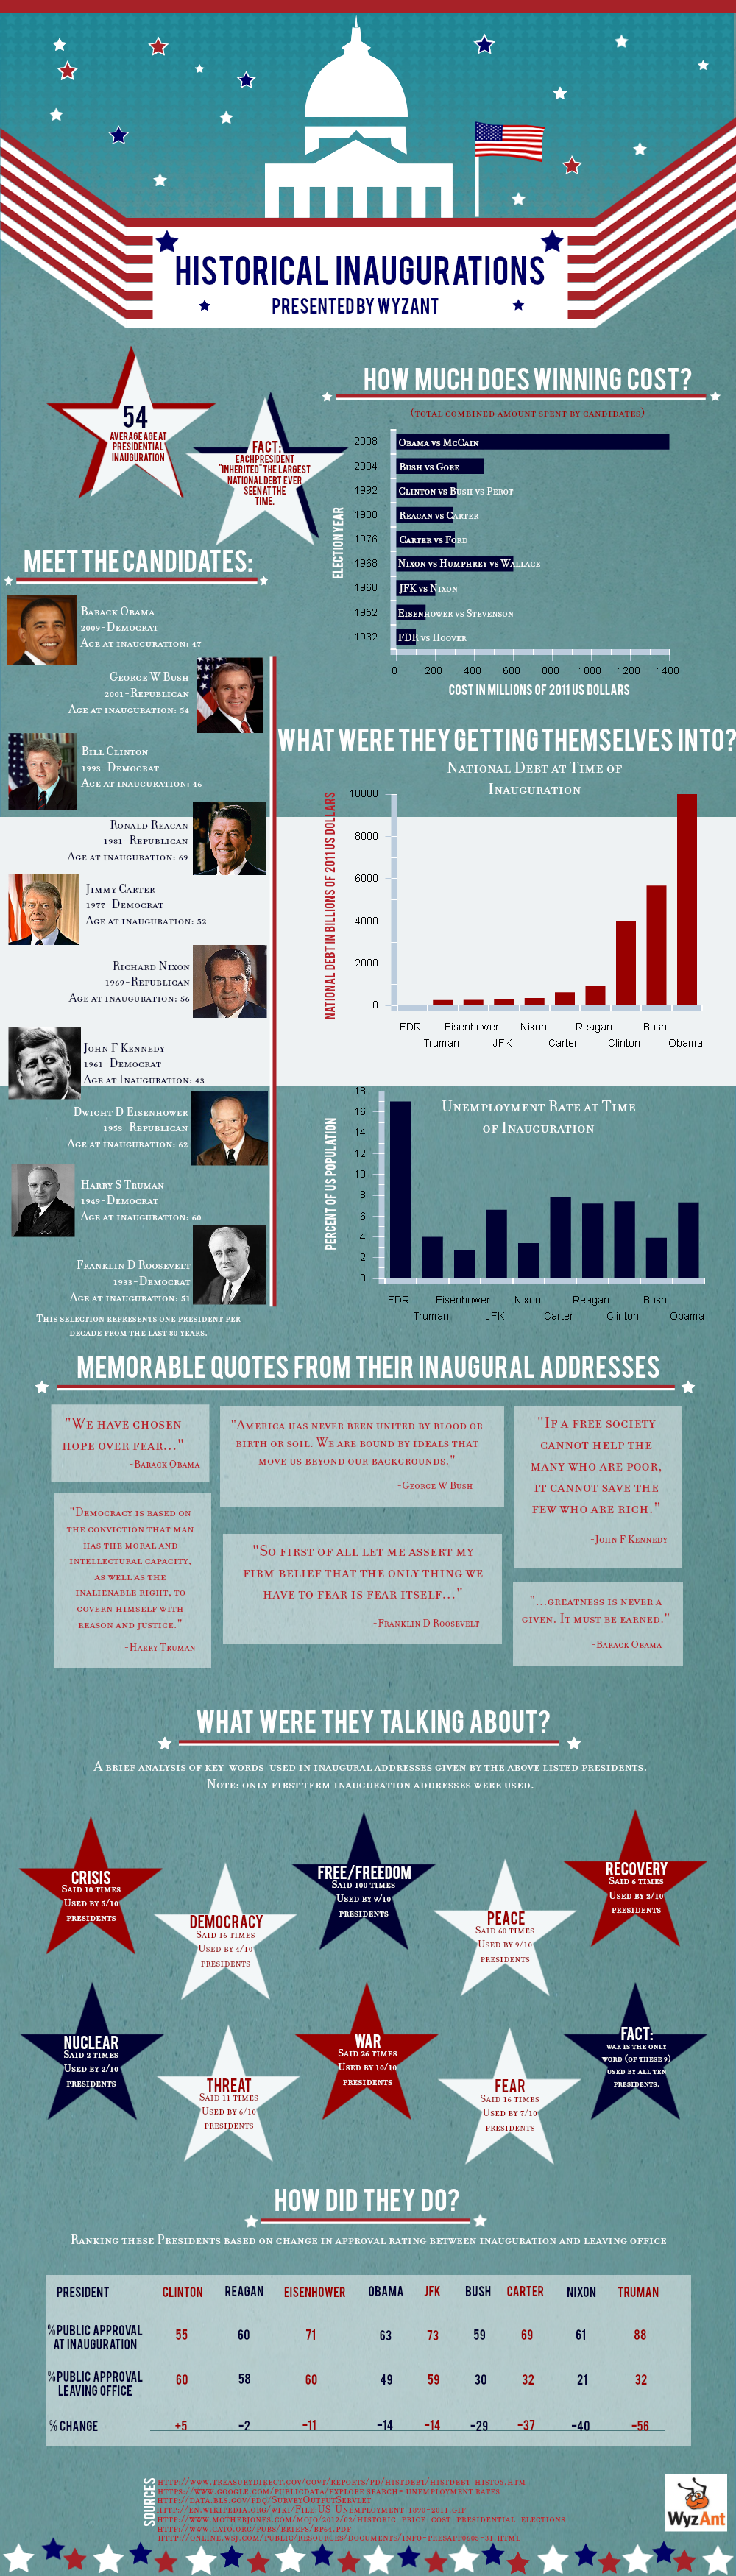 History of Inaugurations